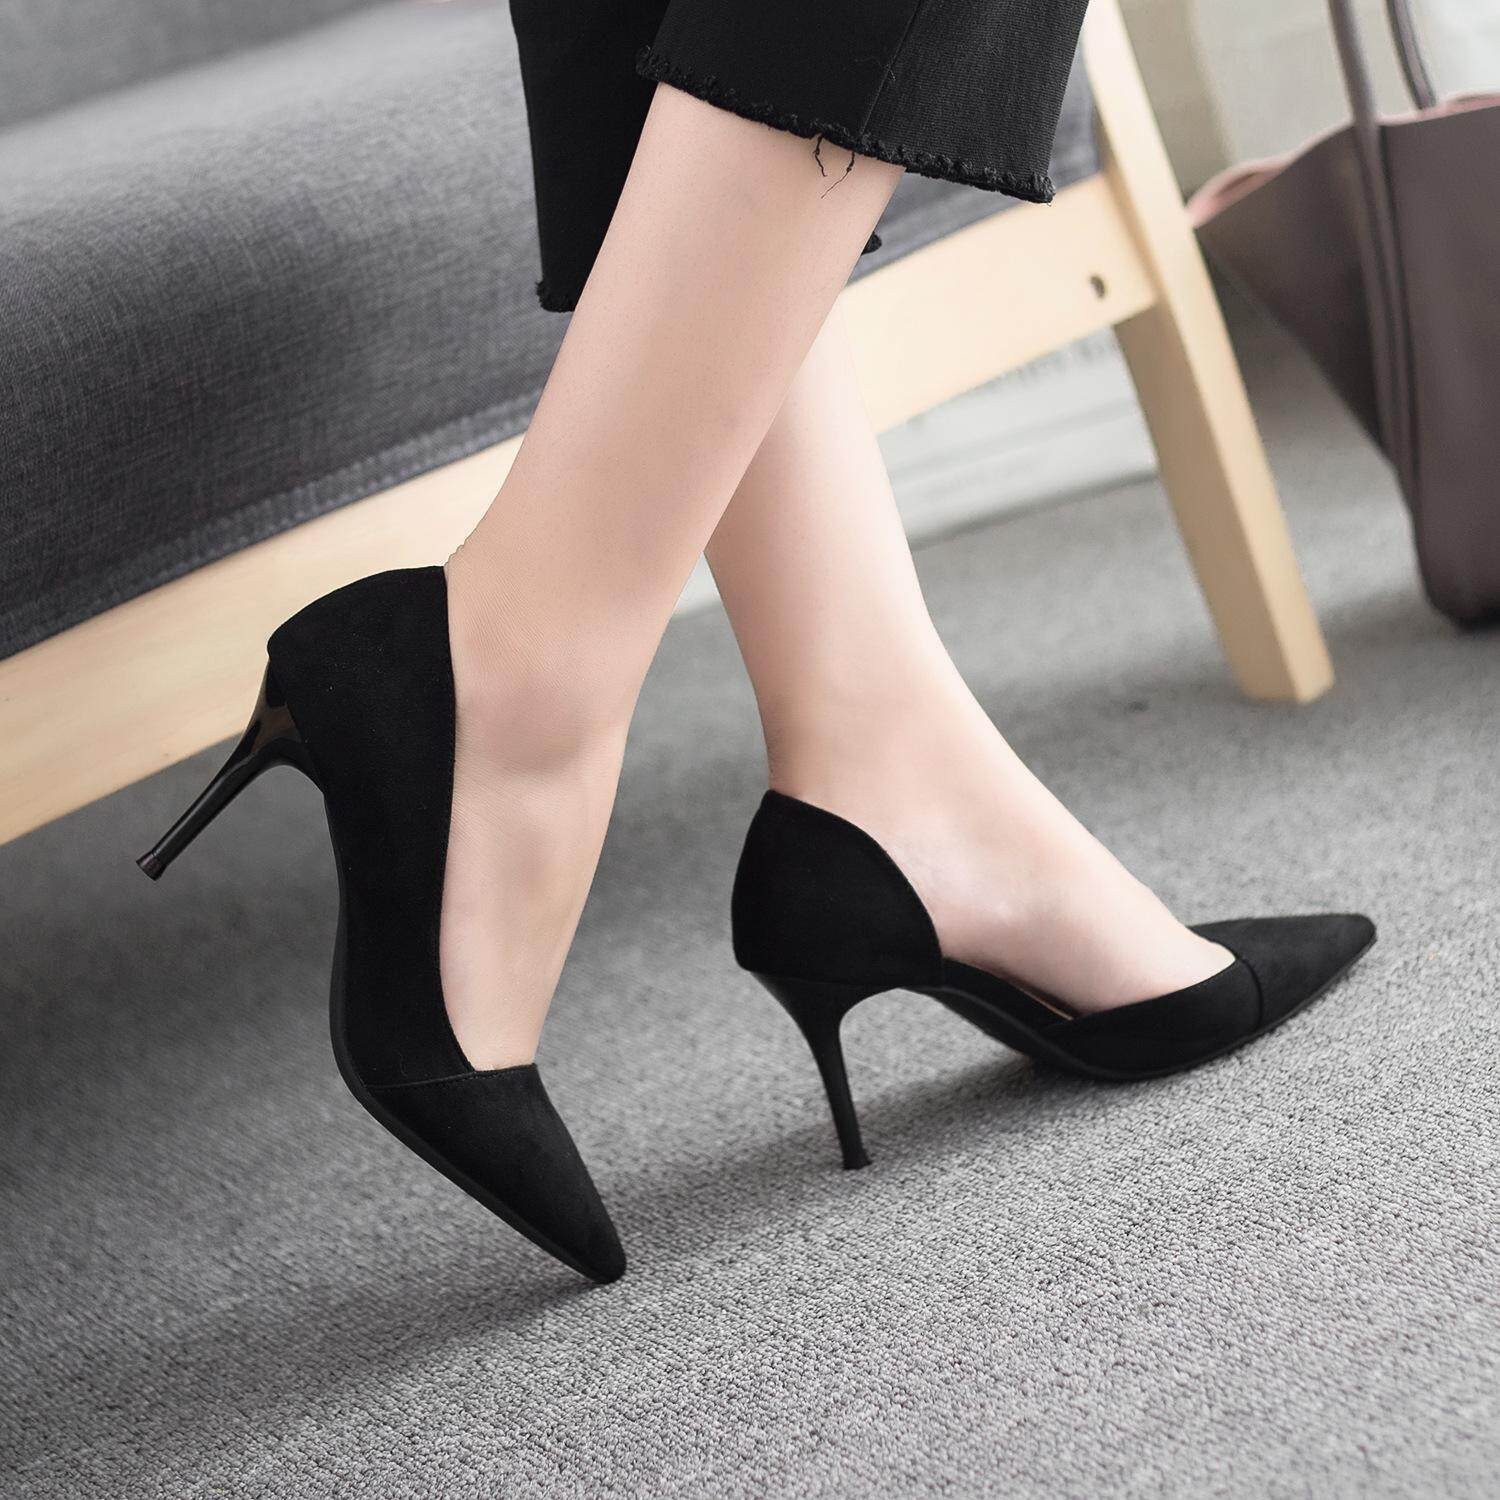 00f03dcc3a9 Heeled Mules for sale - Womens Mules online brands, prices & reviews ...